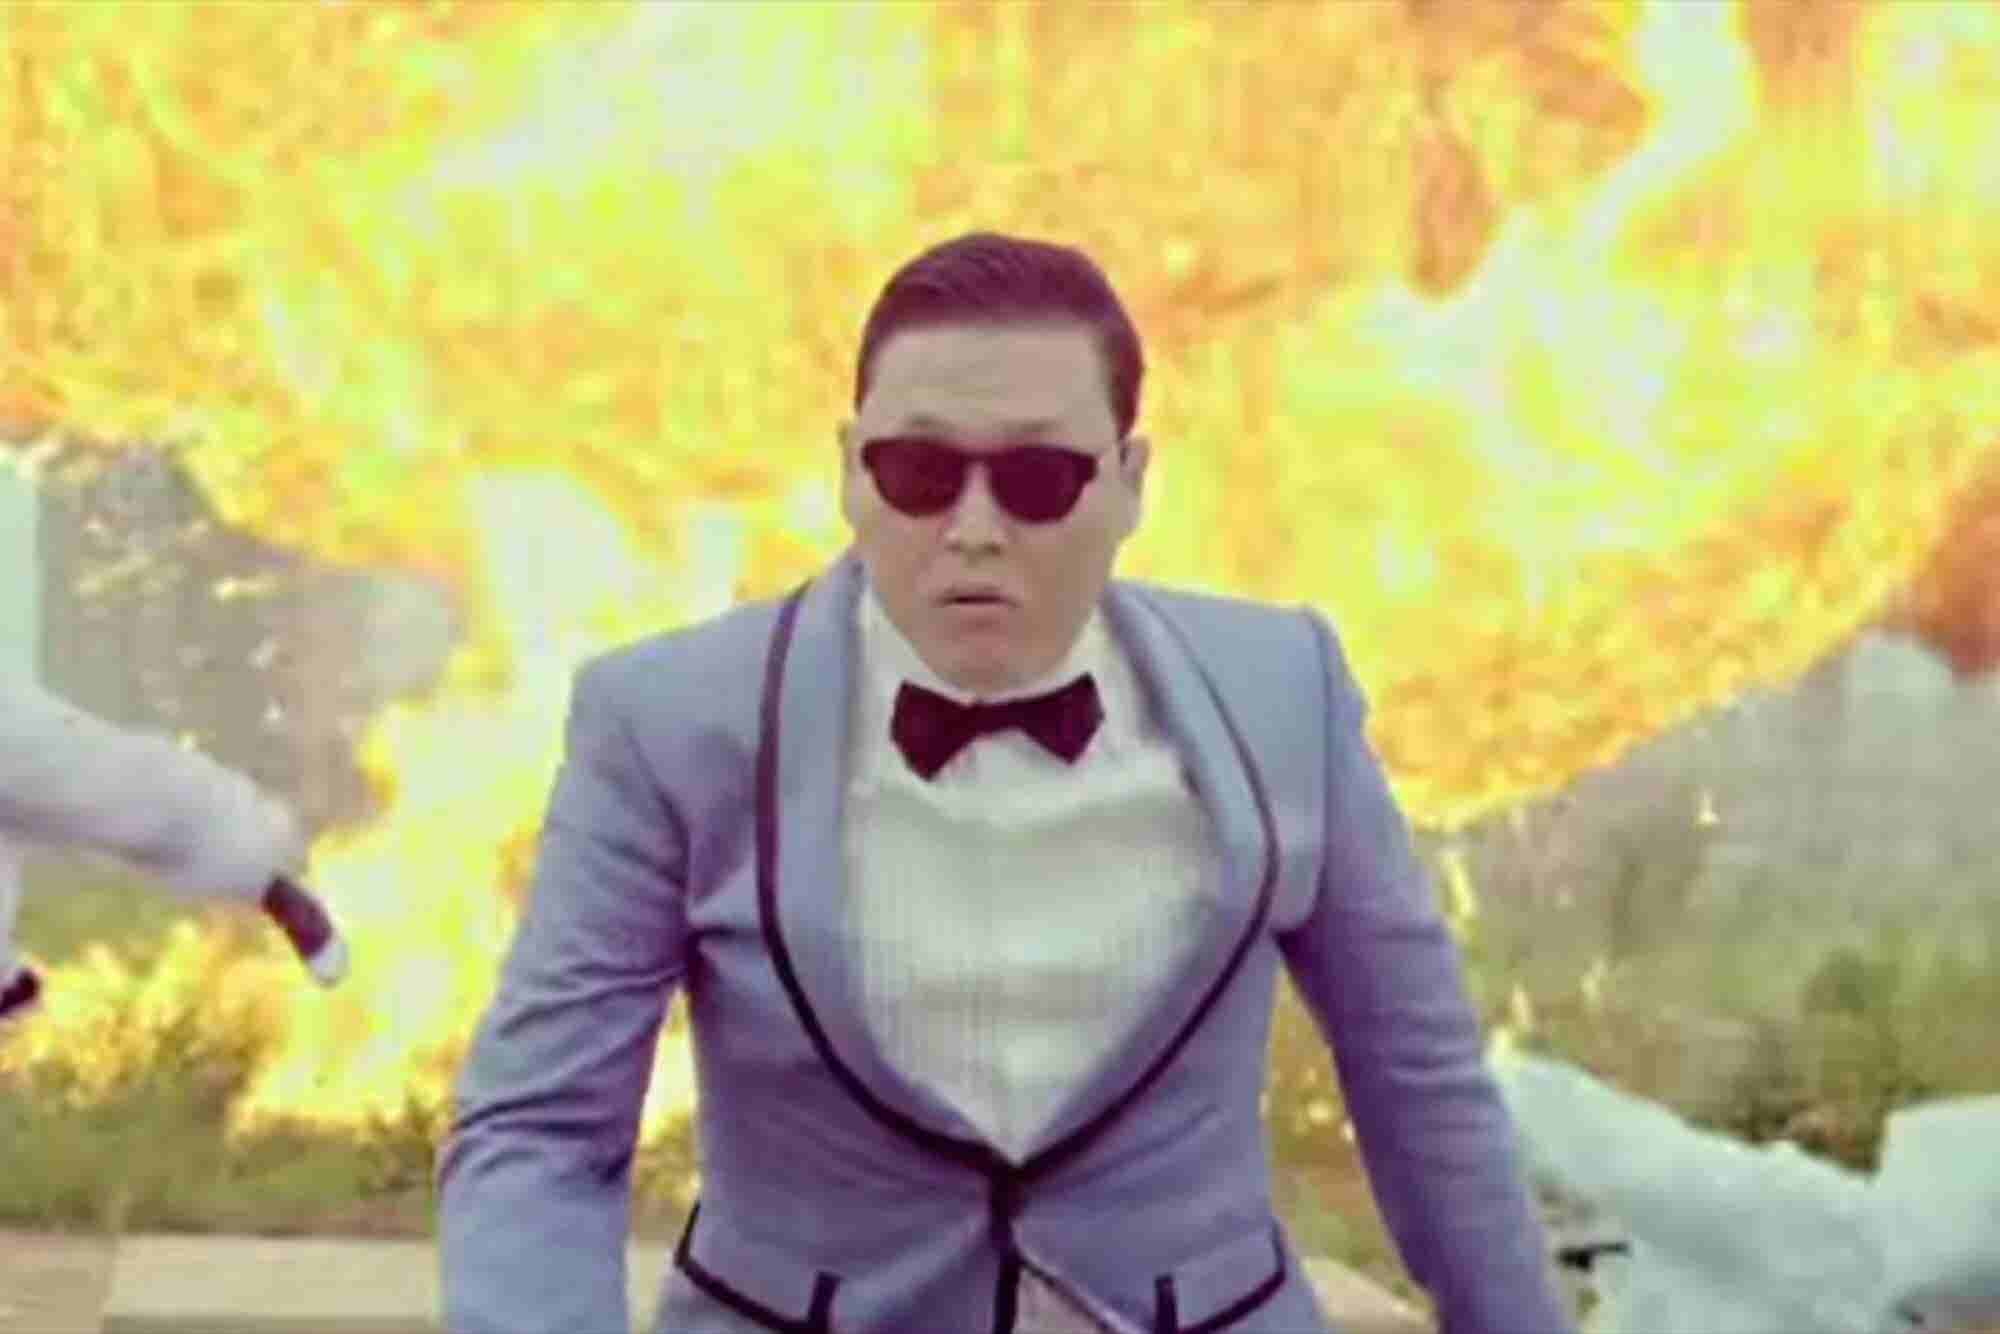 'Gangnam Style' Has Been Viewed So Many Times It Actually Broke YouTube